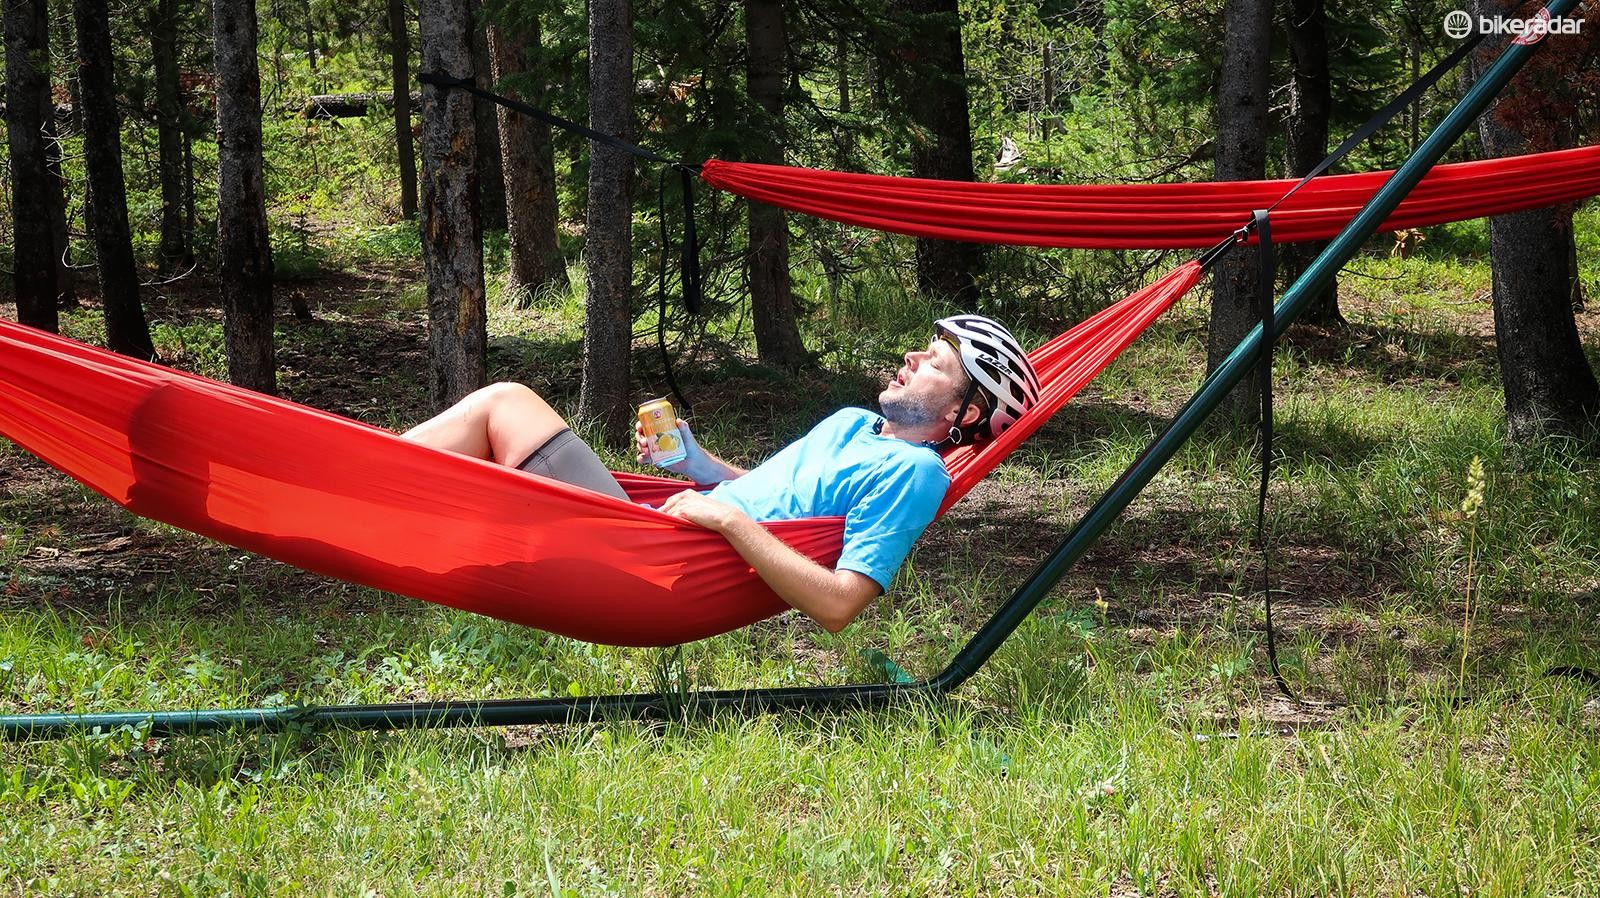 There are also mid-ride pit stops with beer and hammocks